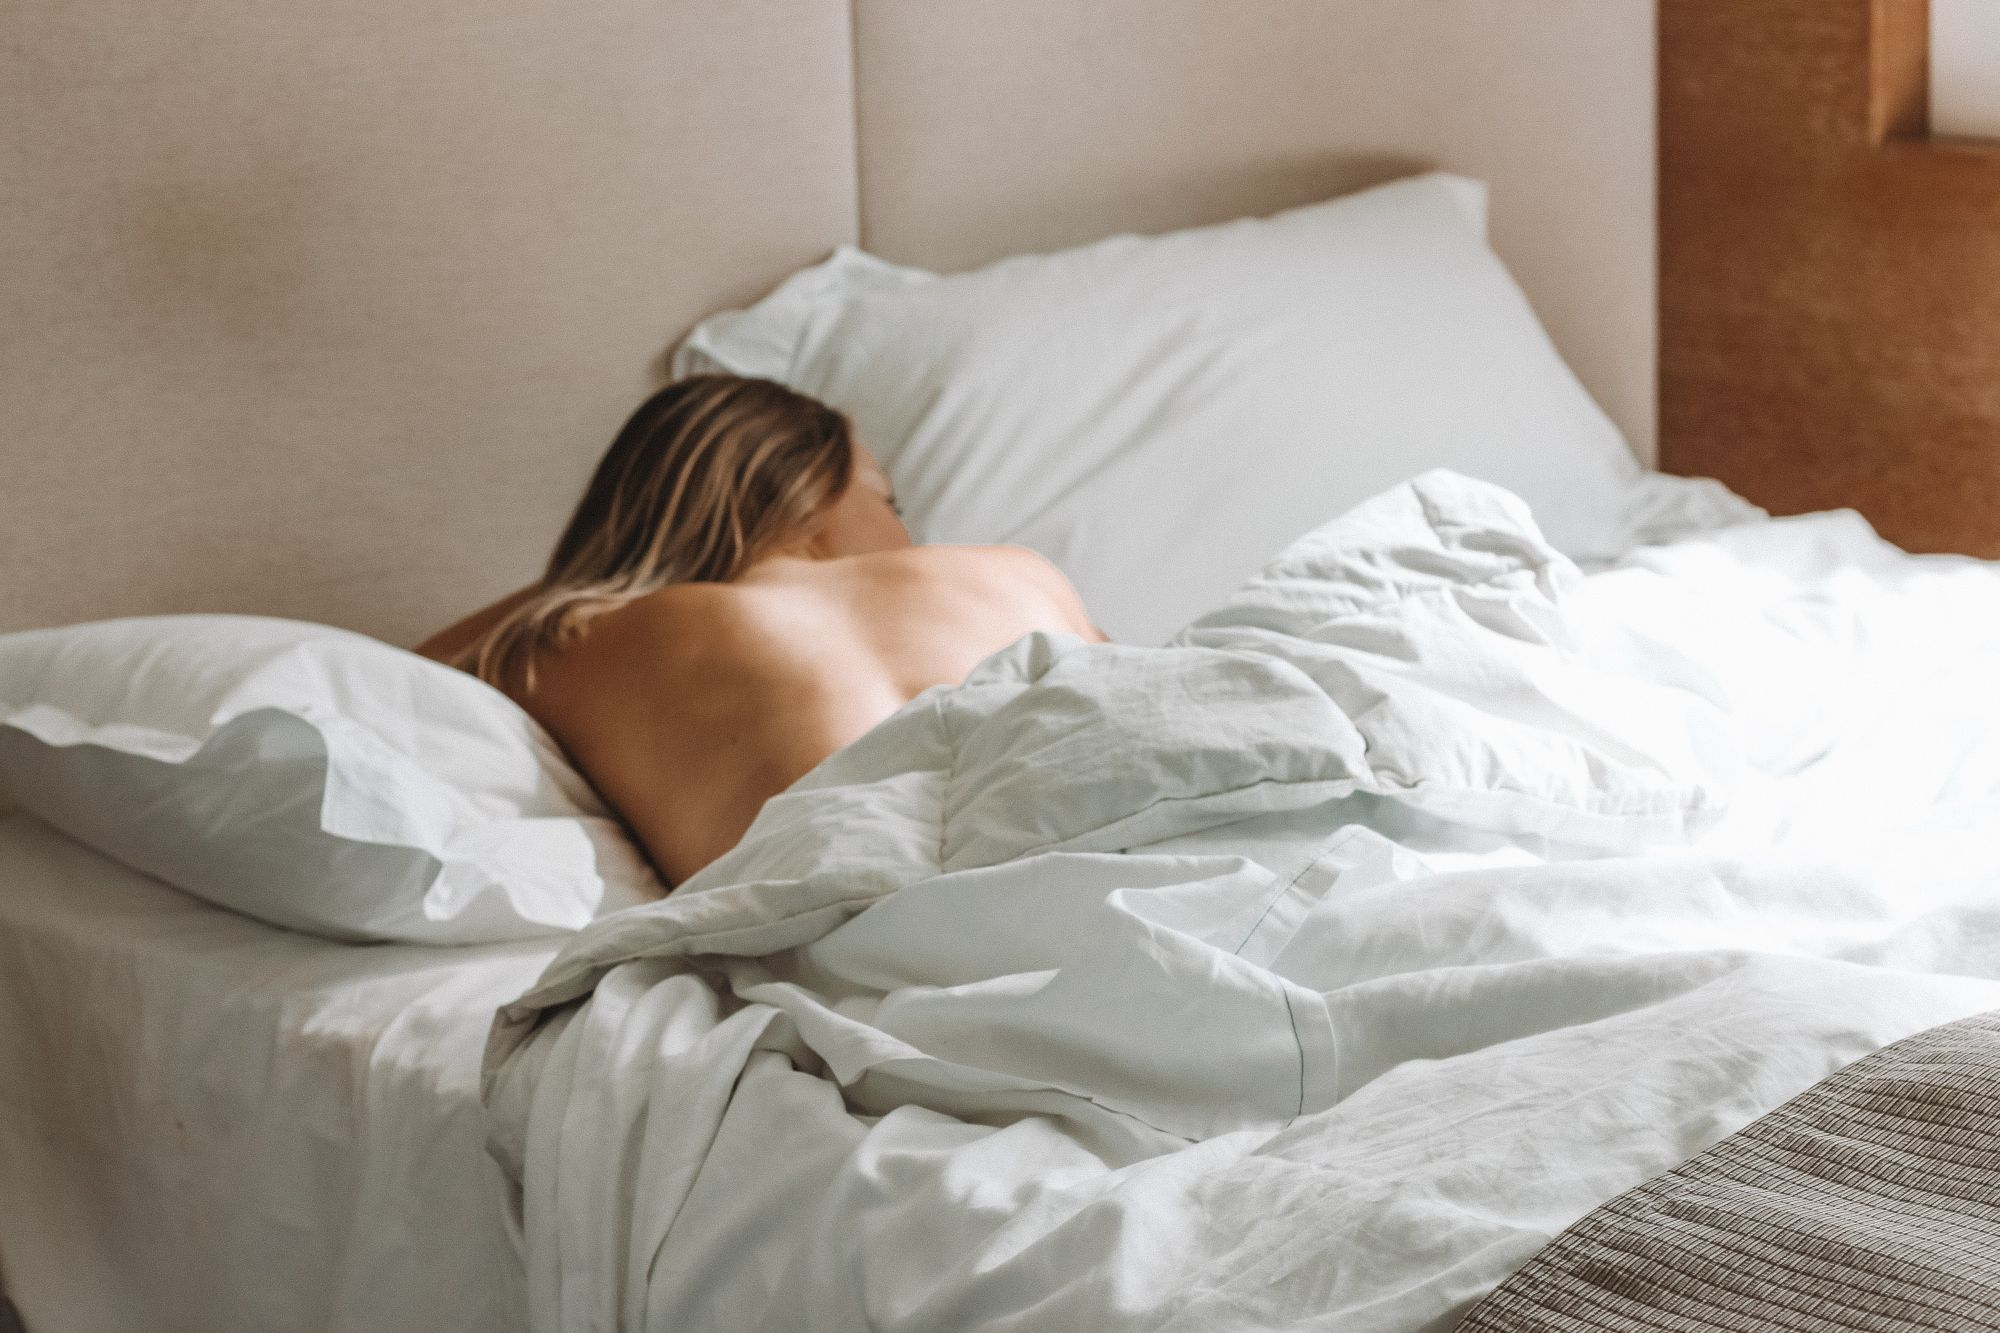 Wake Up An Hour Earlier to Improve Your Mental Health, Says New Study